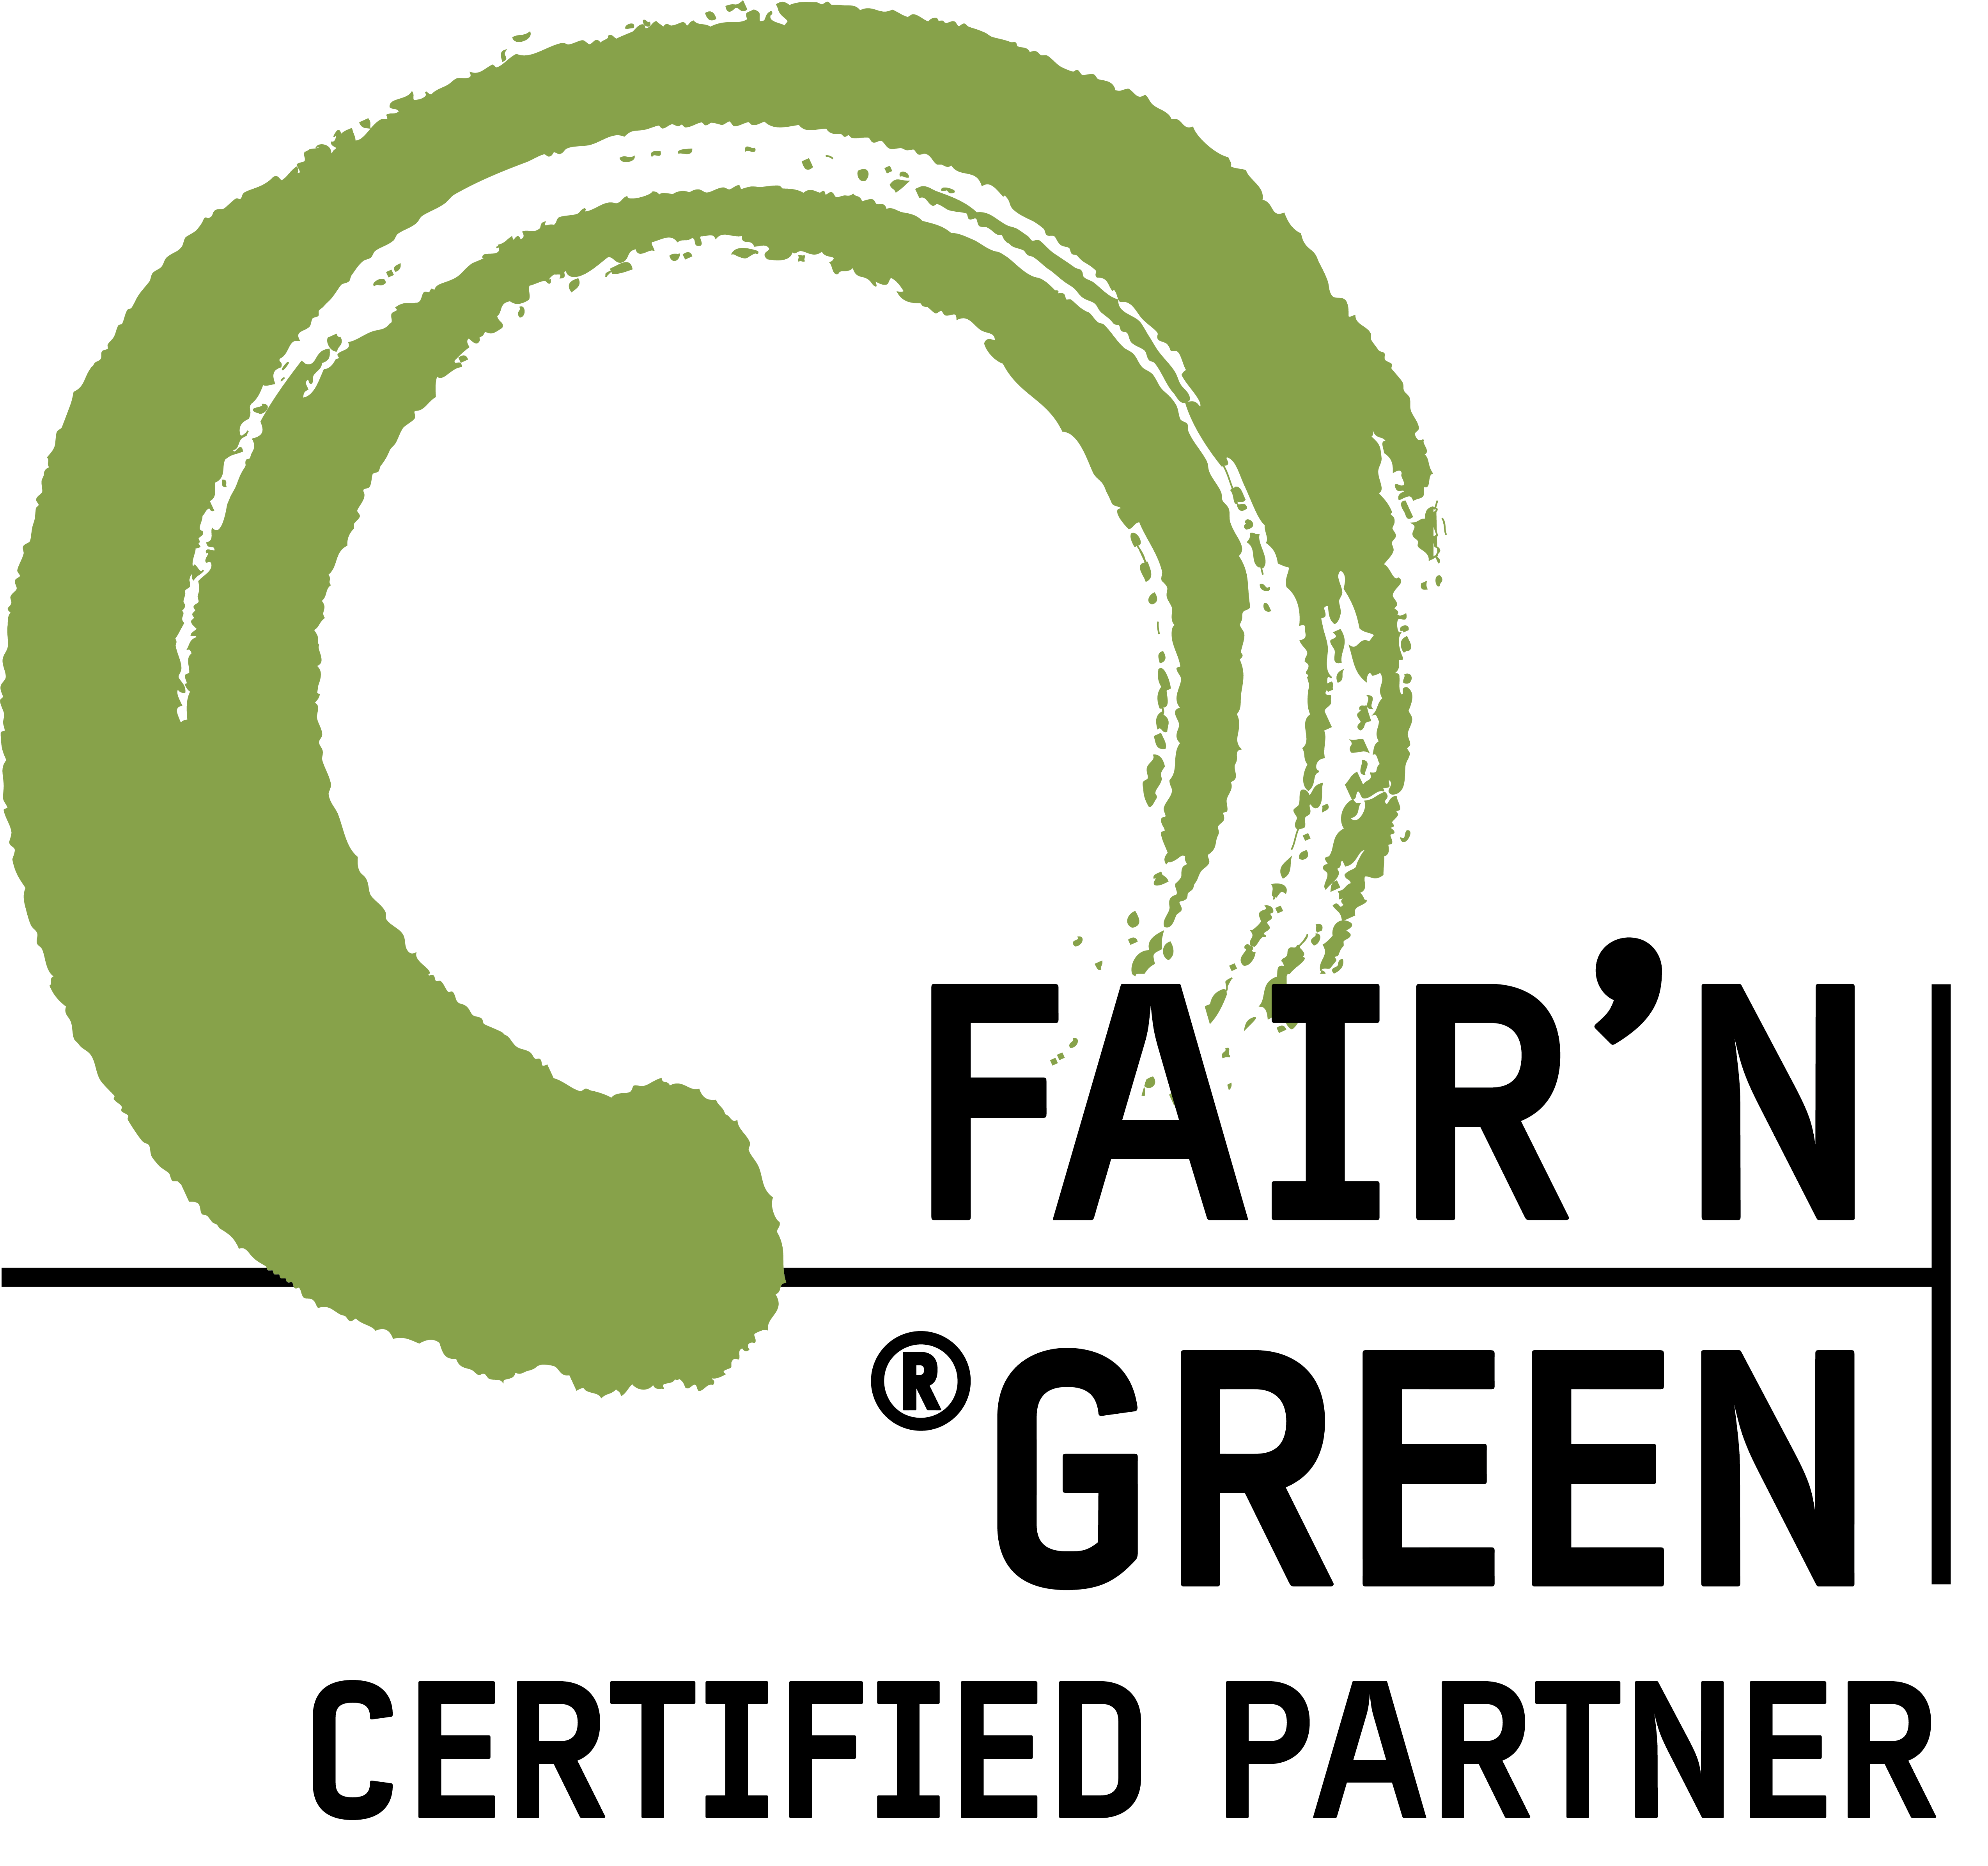 FAIR'N GREEN Certified Partner 42_00_77_27 PNGtest